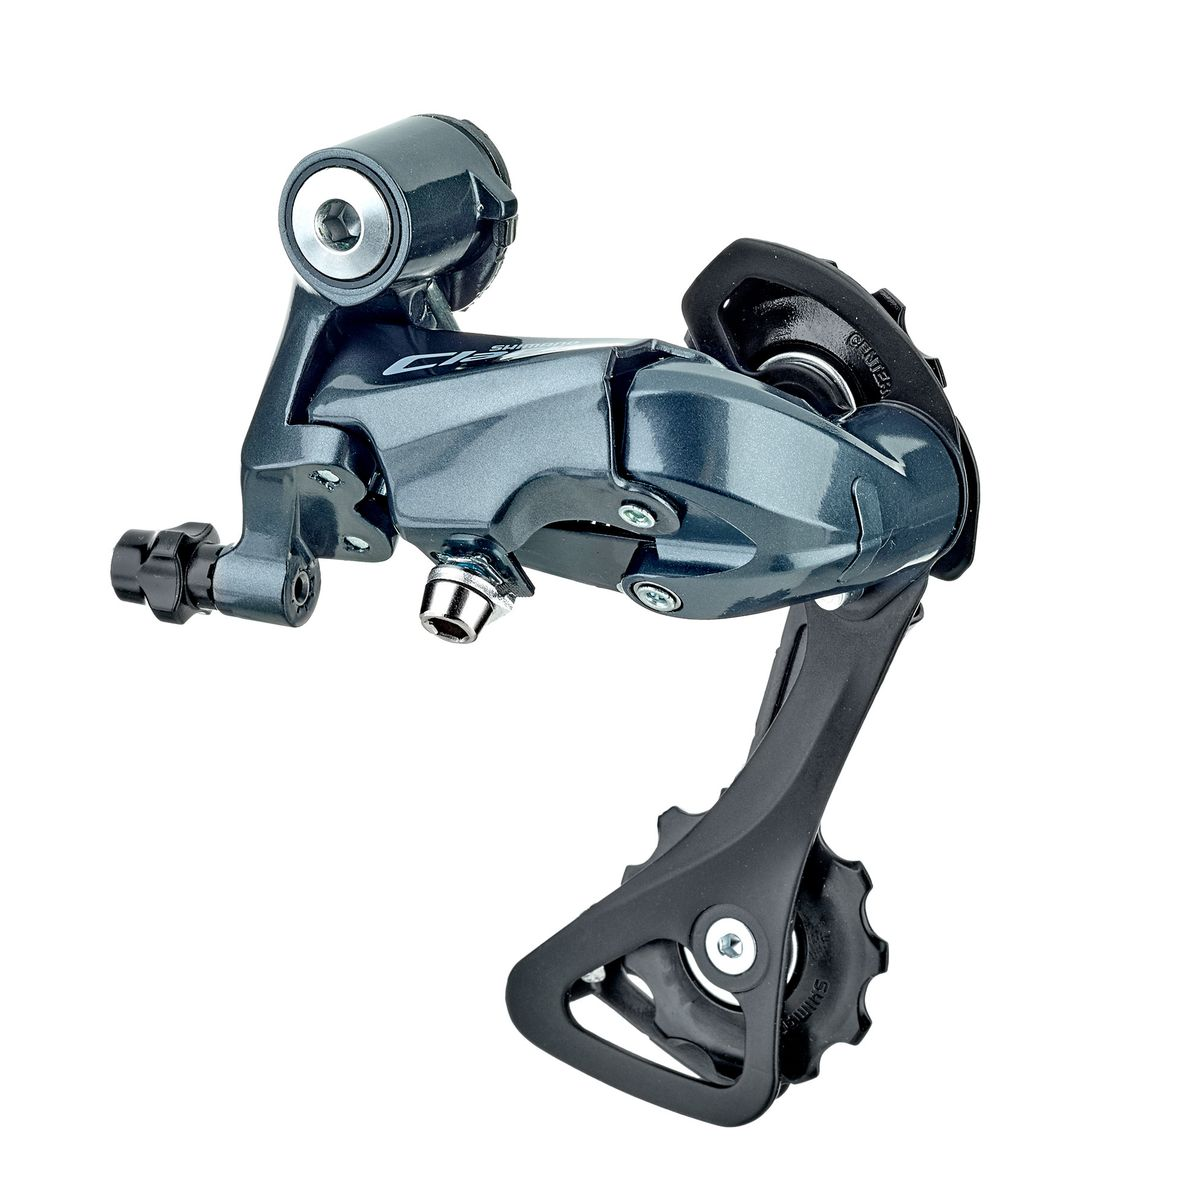 Claris RD-R2000 8-speed rear derailleur